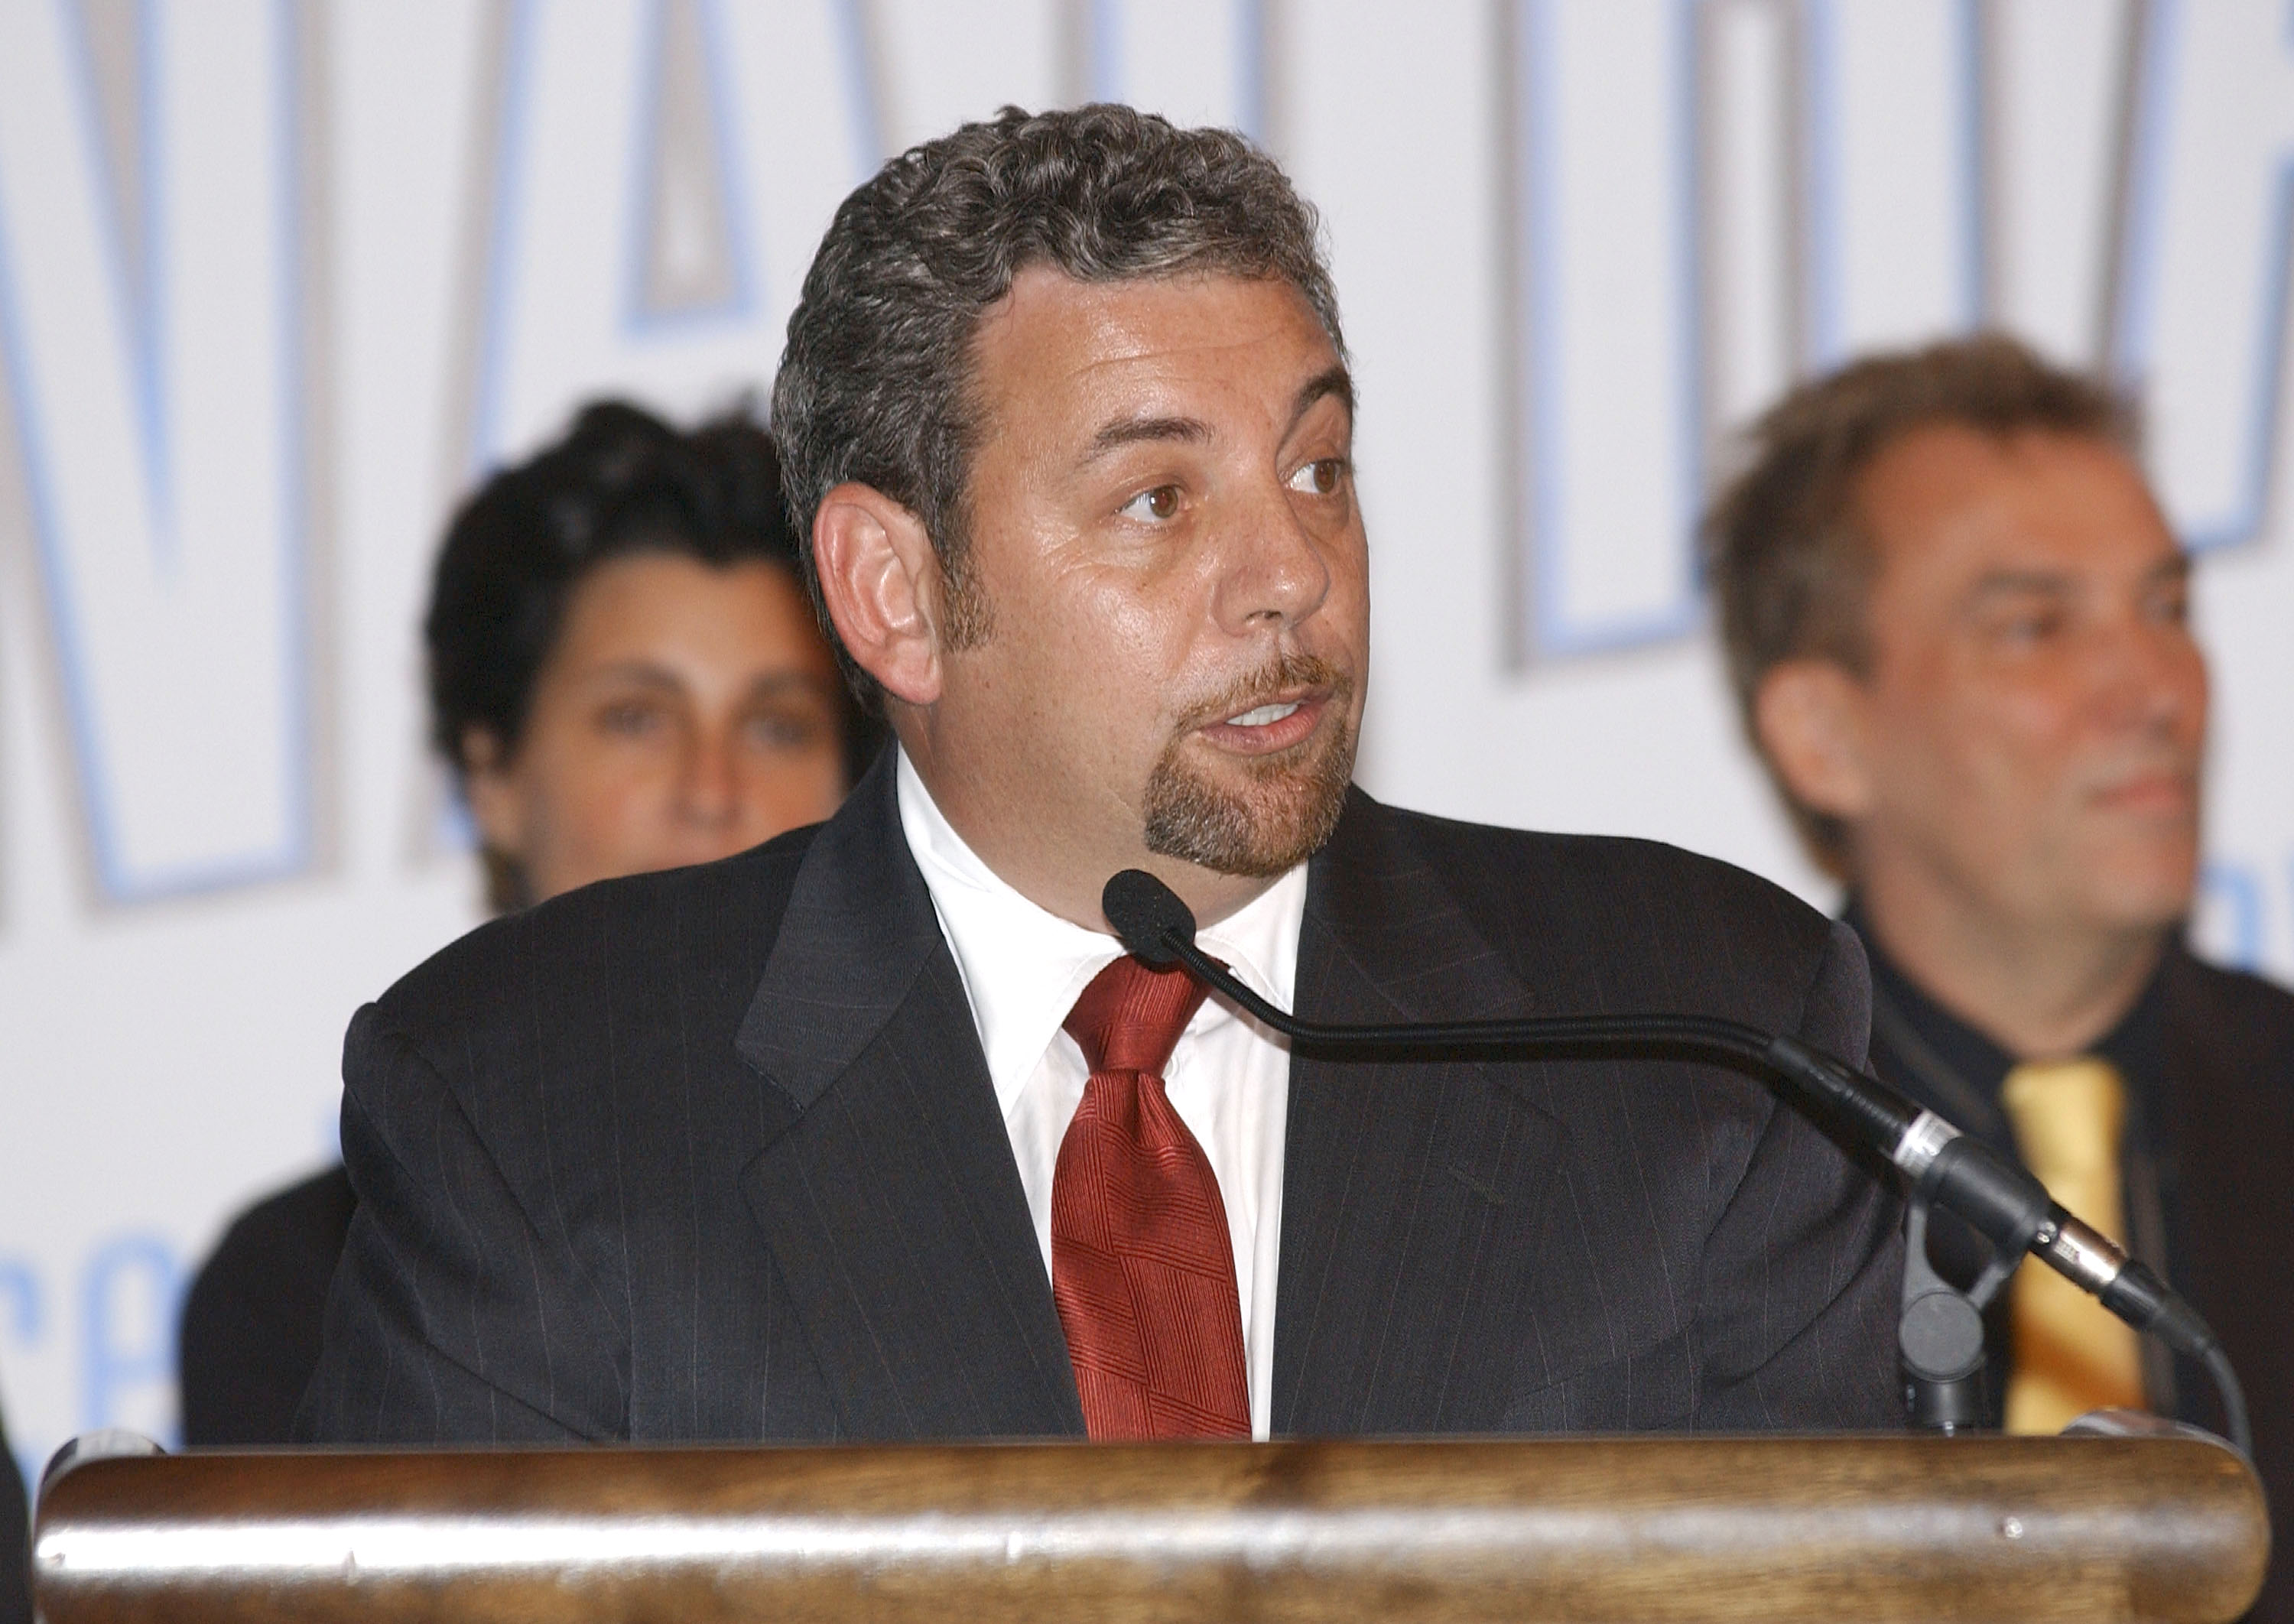 James Dolan, President and CEO of Cablevision (Photo: Frank Micelotta/Getty Images)